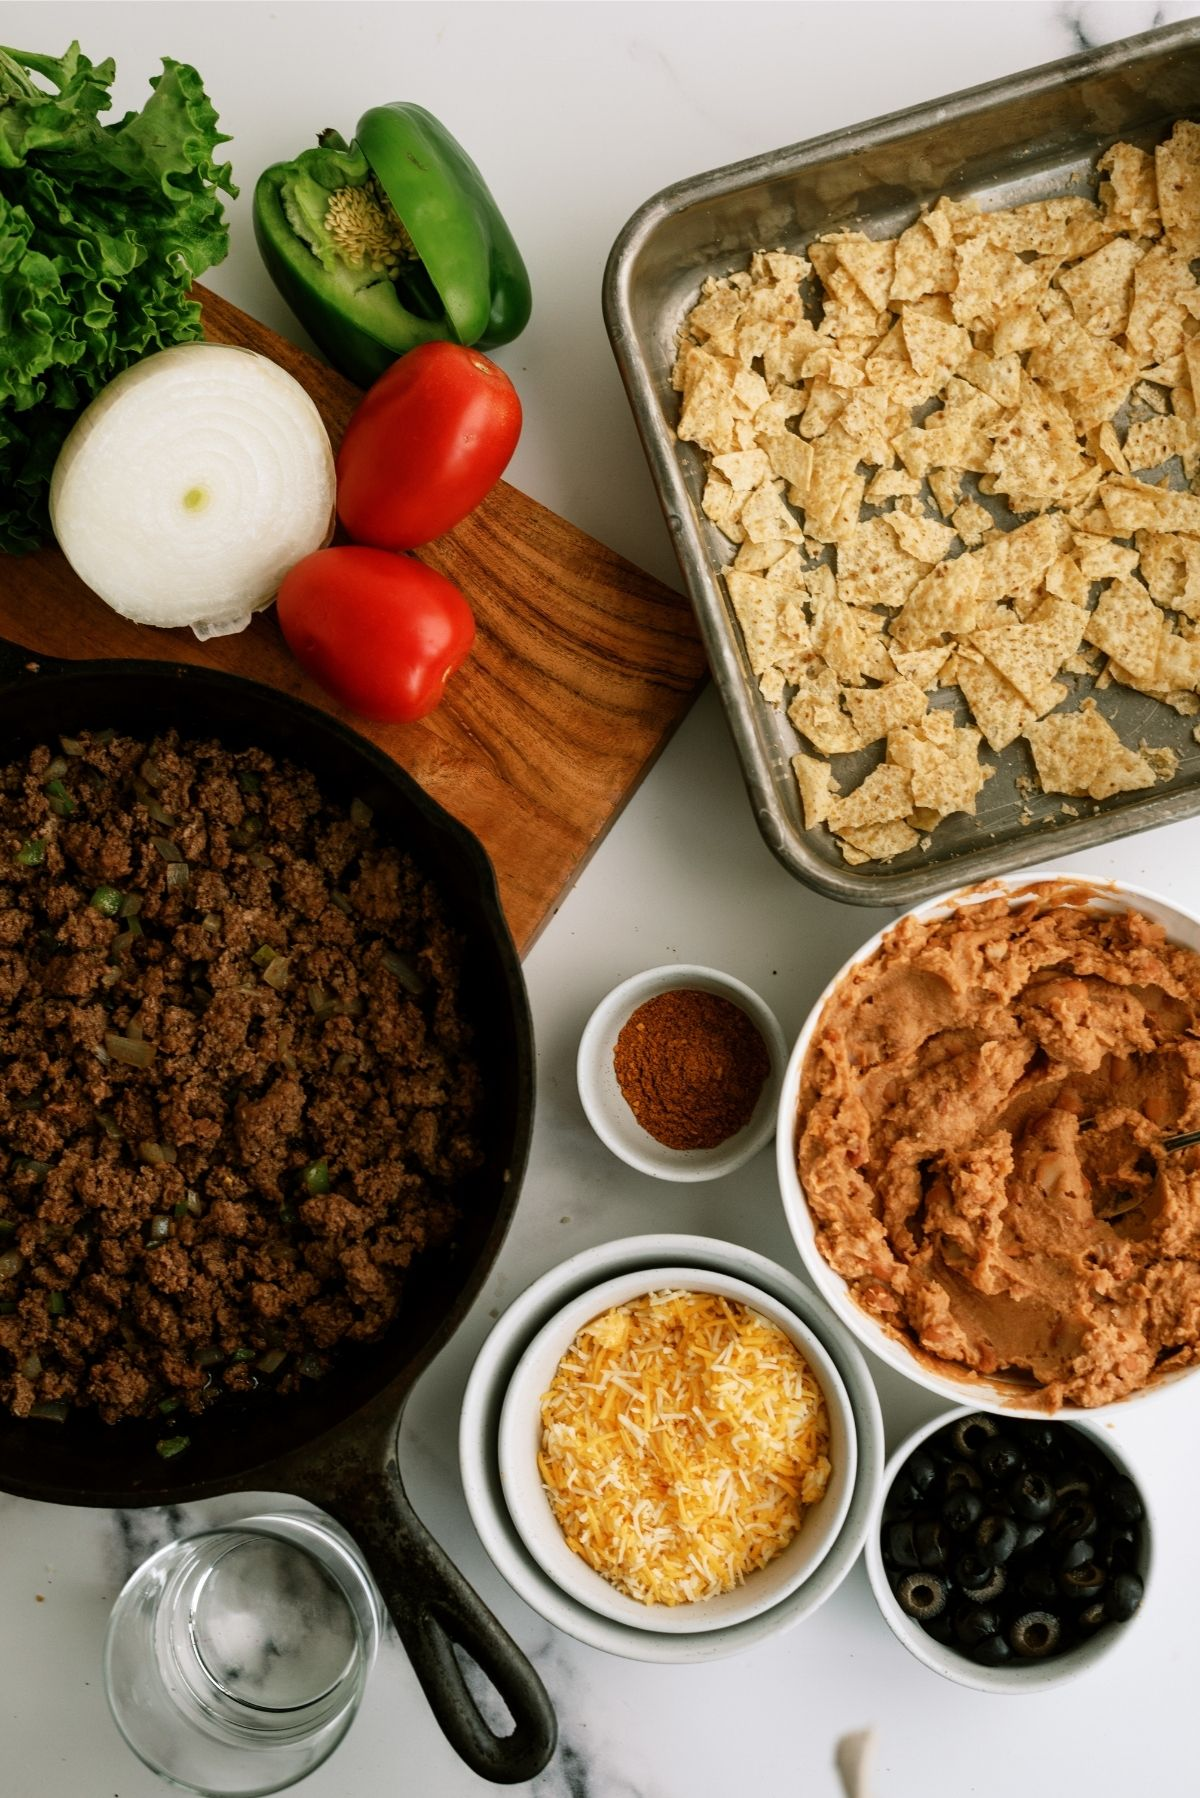 Ingredients for 20 Minute Taco Salad Casserole